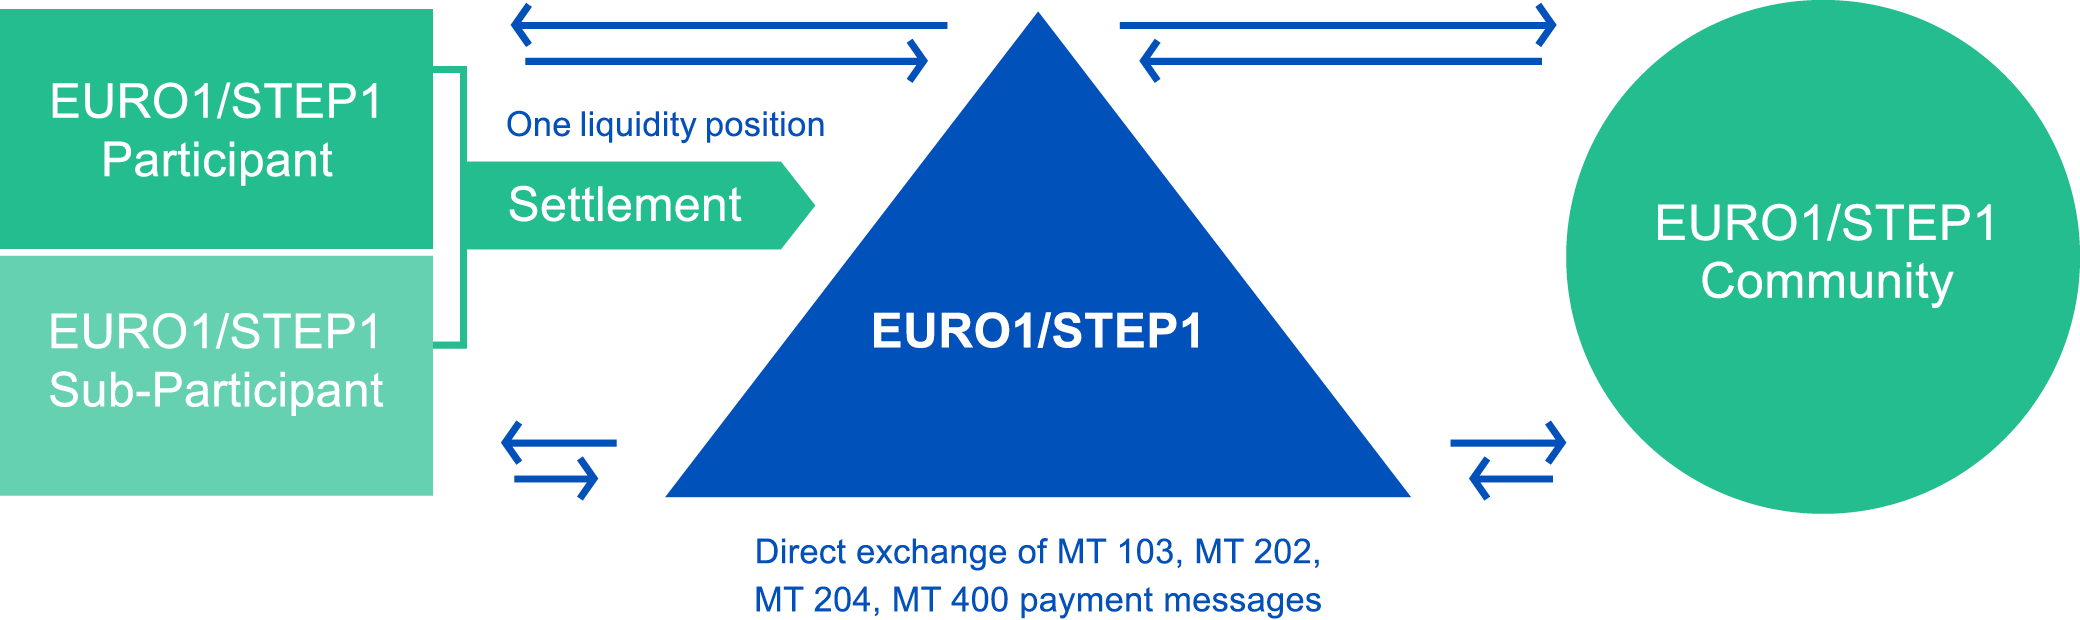 EURO1 STEP1 sub-participation model